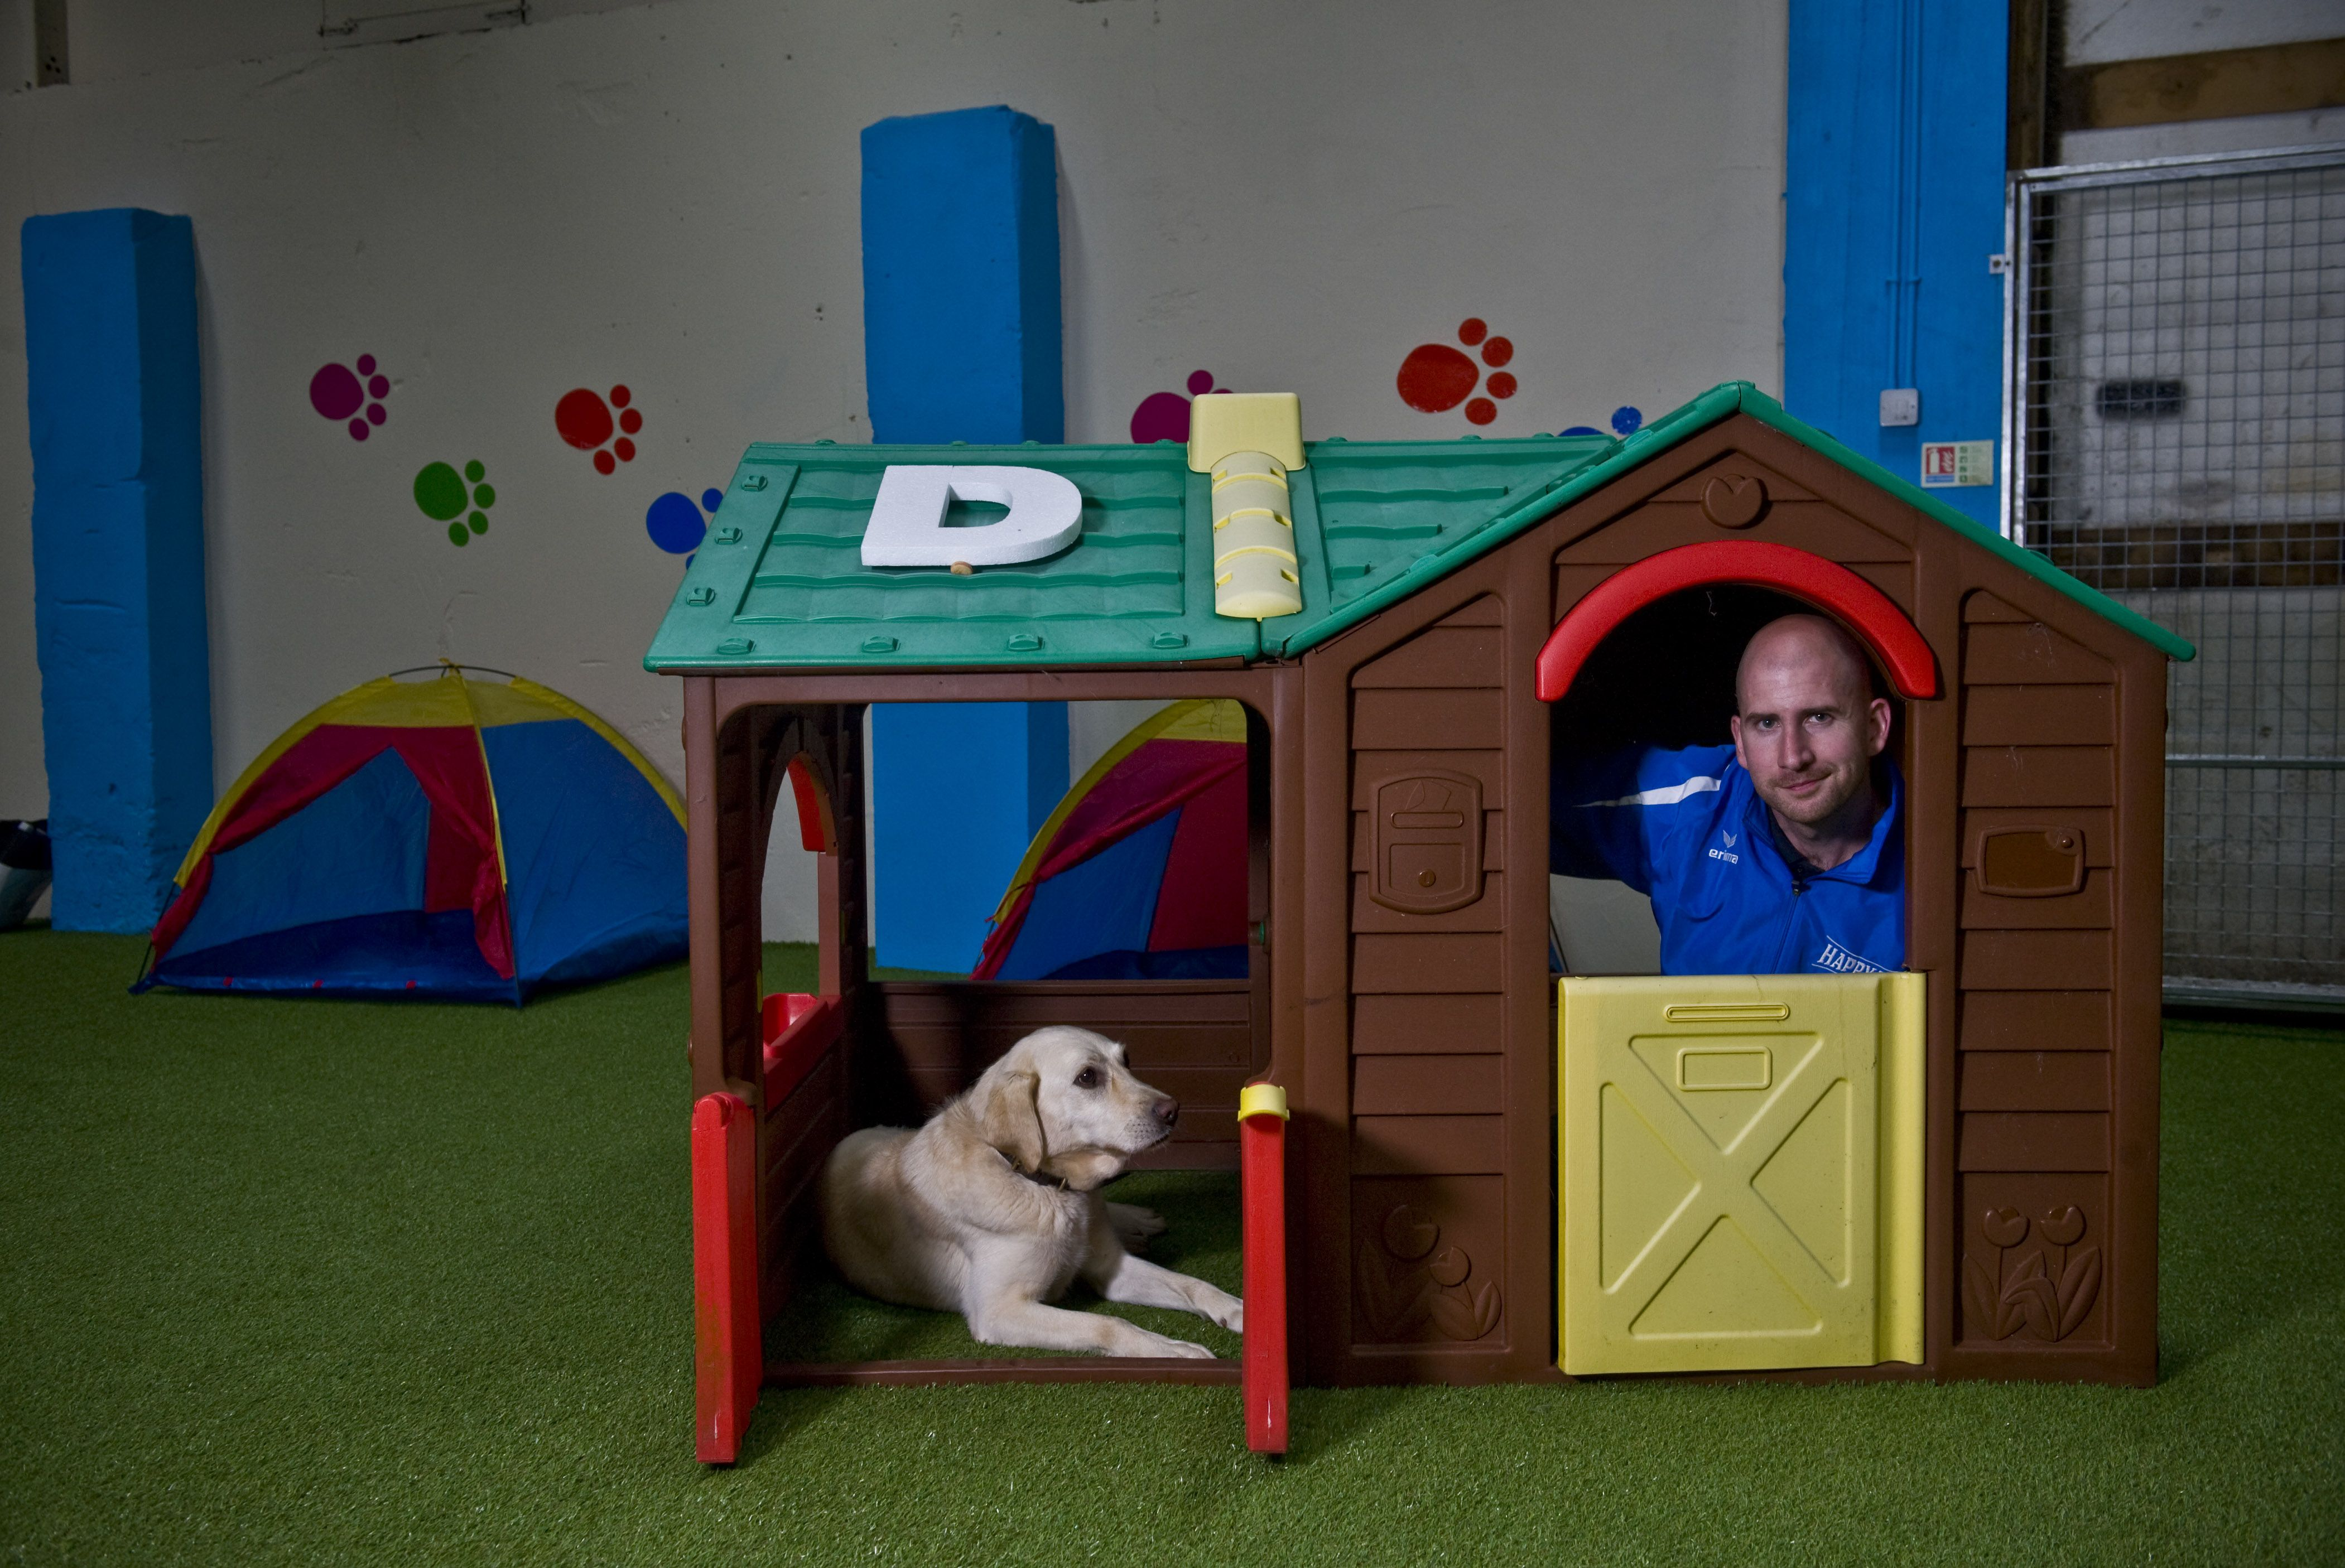 Mark Had Been Unemployed Since May 2010 He Turned To The Prince S Trust With An Idea Of Setting Up A Dog Walking And Training Servic Doggy Dog Area Doodle Dog